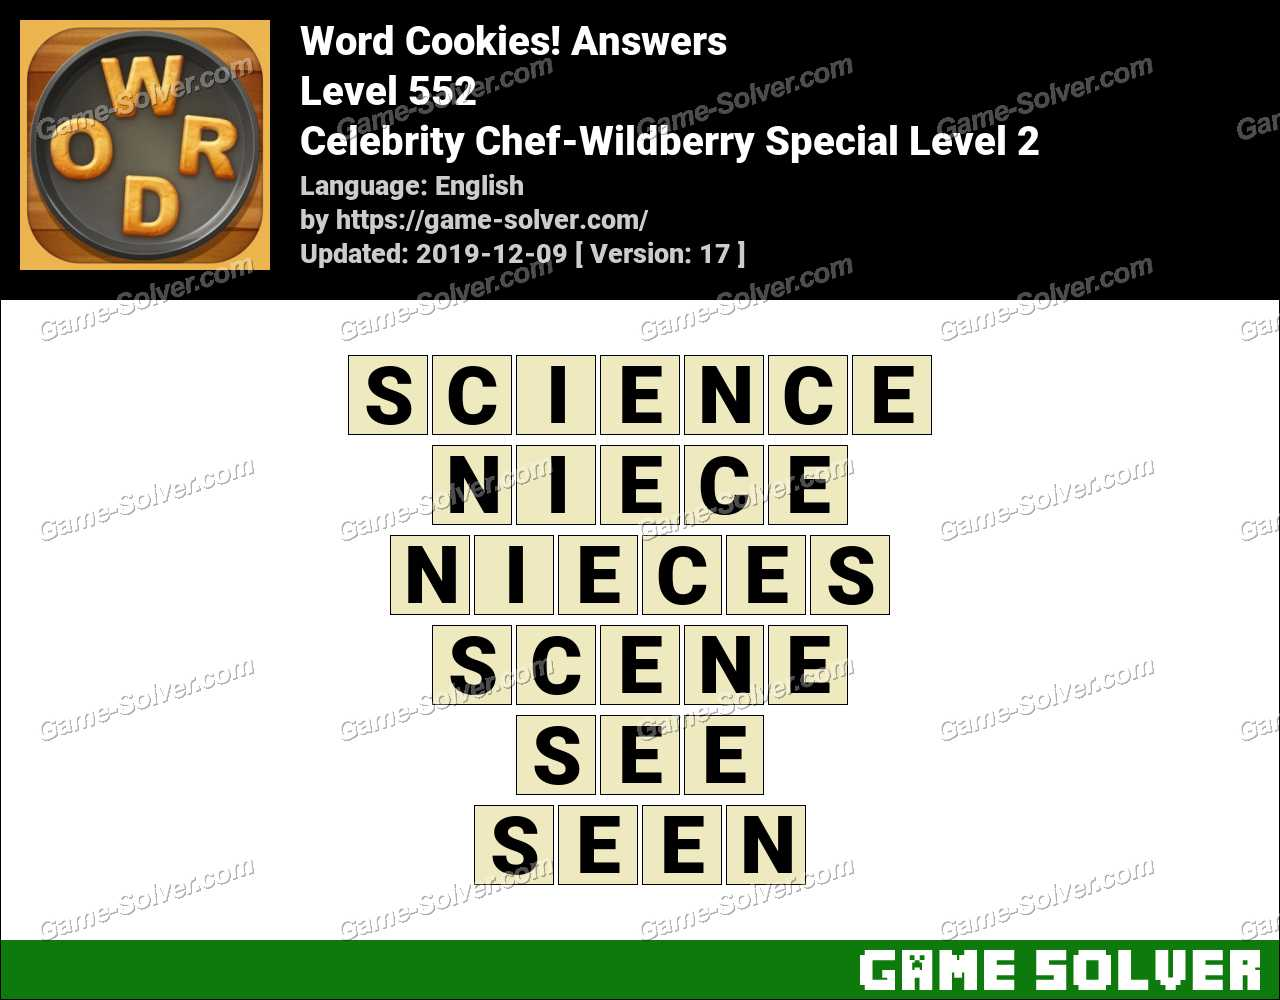 Word Cookies Celebrity Chef-Wildberry Special Level 2 Answers